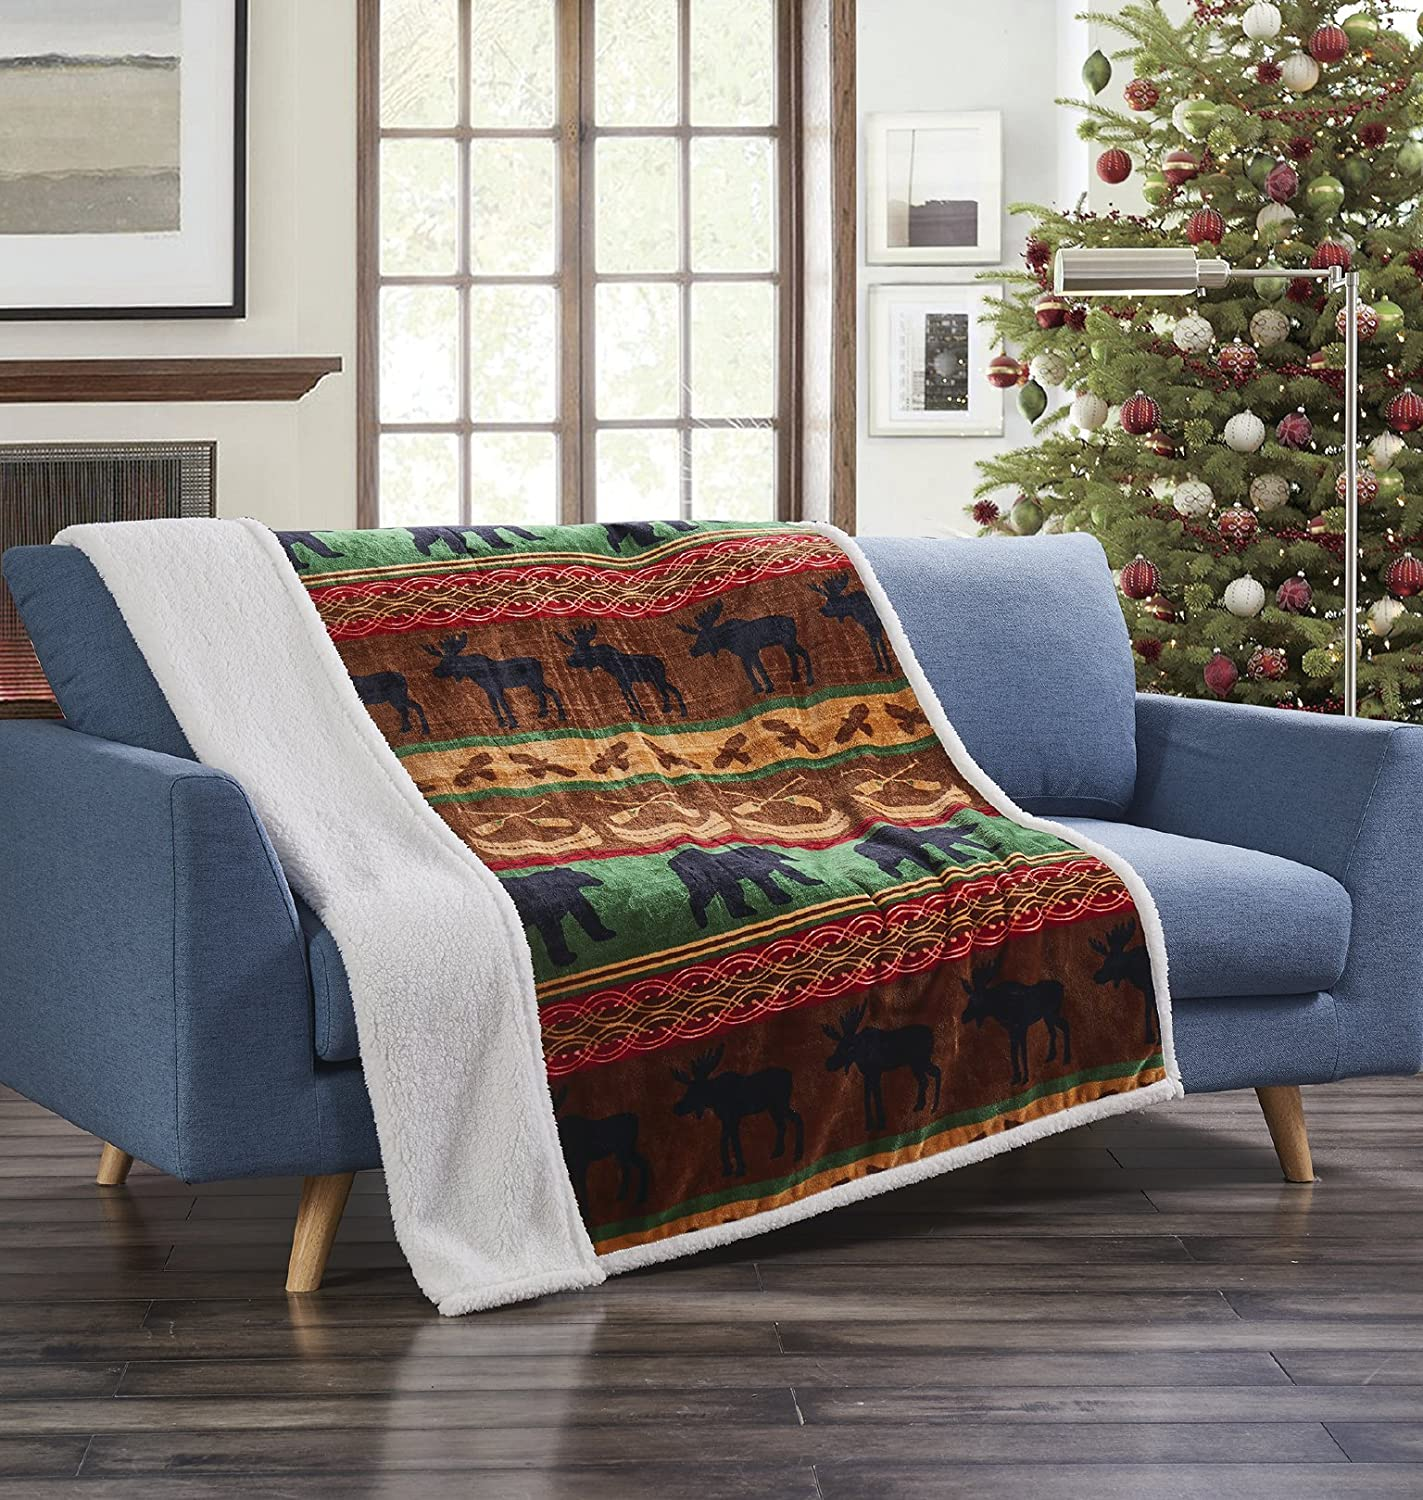 "Virah Bella Lodge Preserve Rustic Flannel Throw Blanket with Sherpa Backing 50"" x 60"""